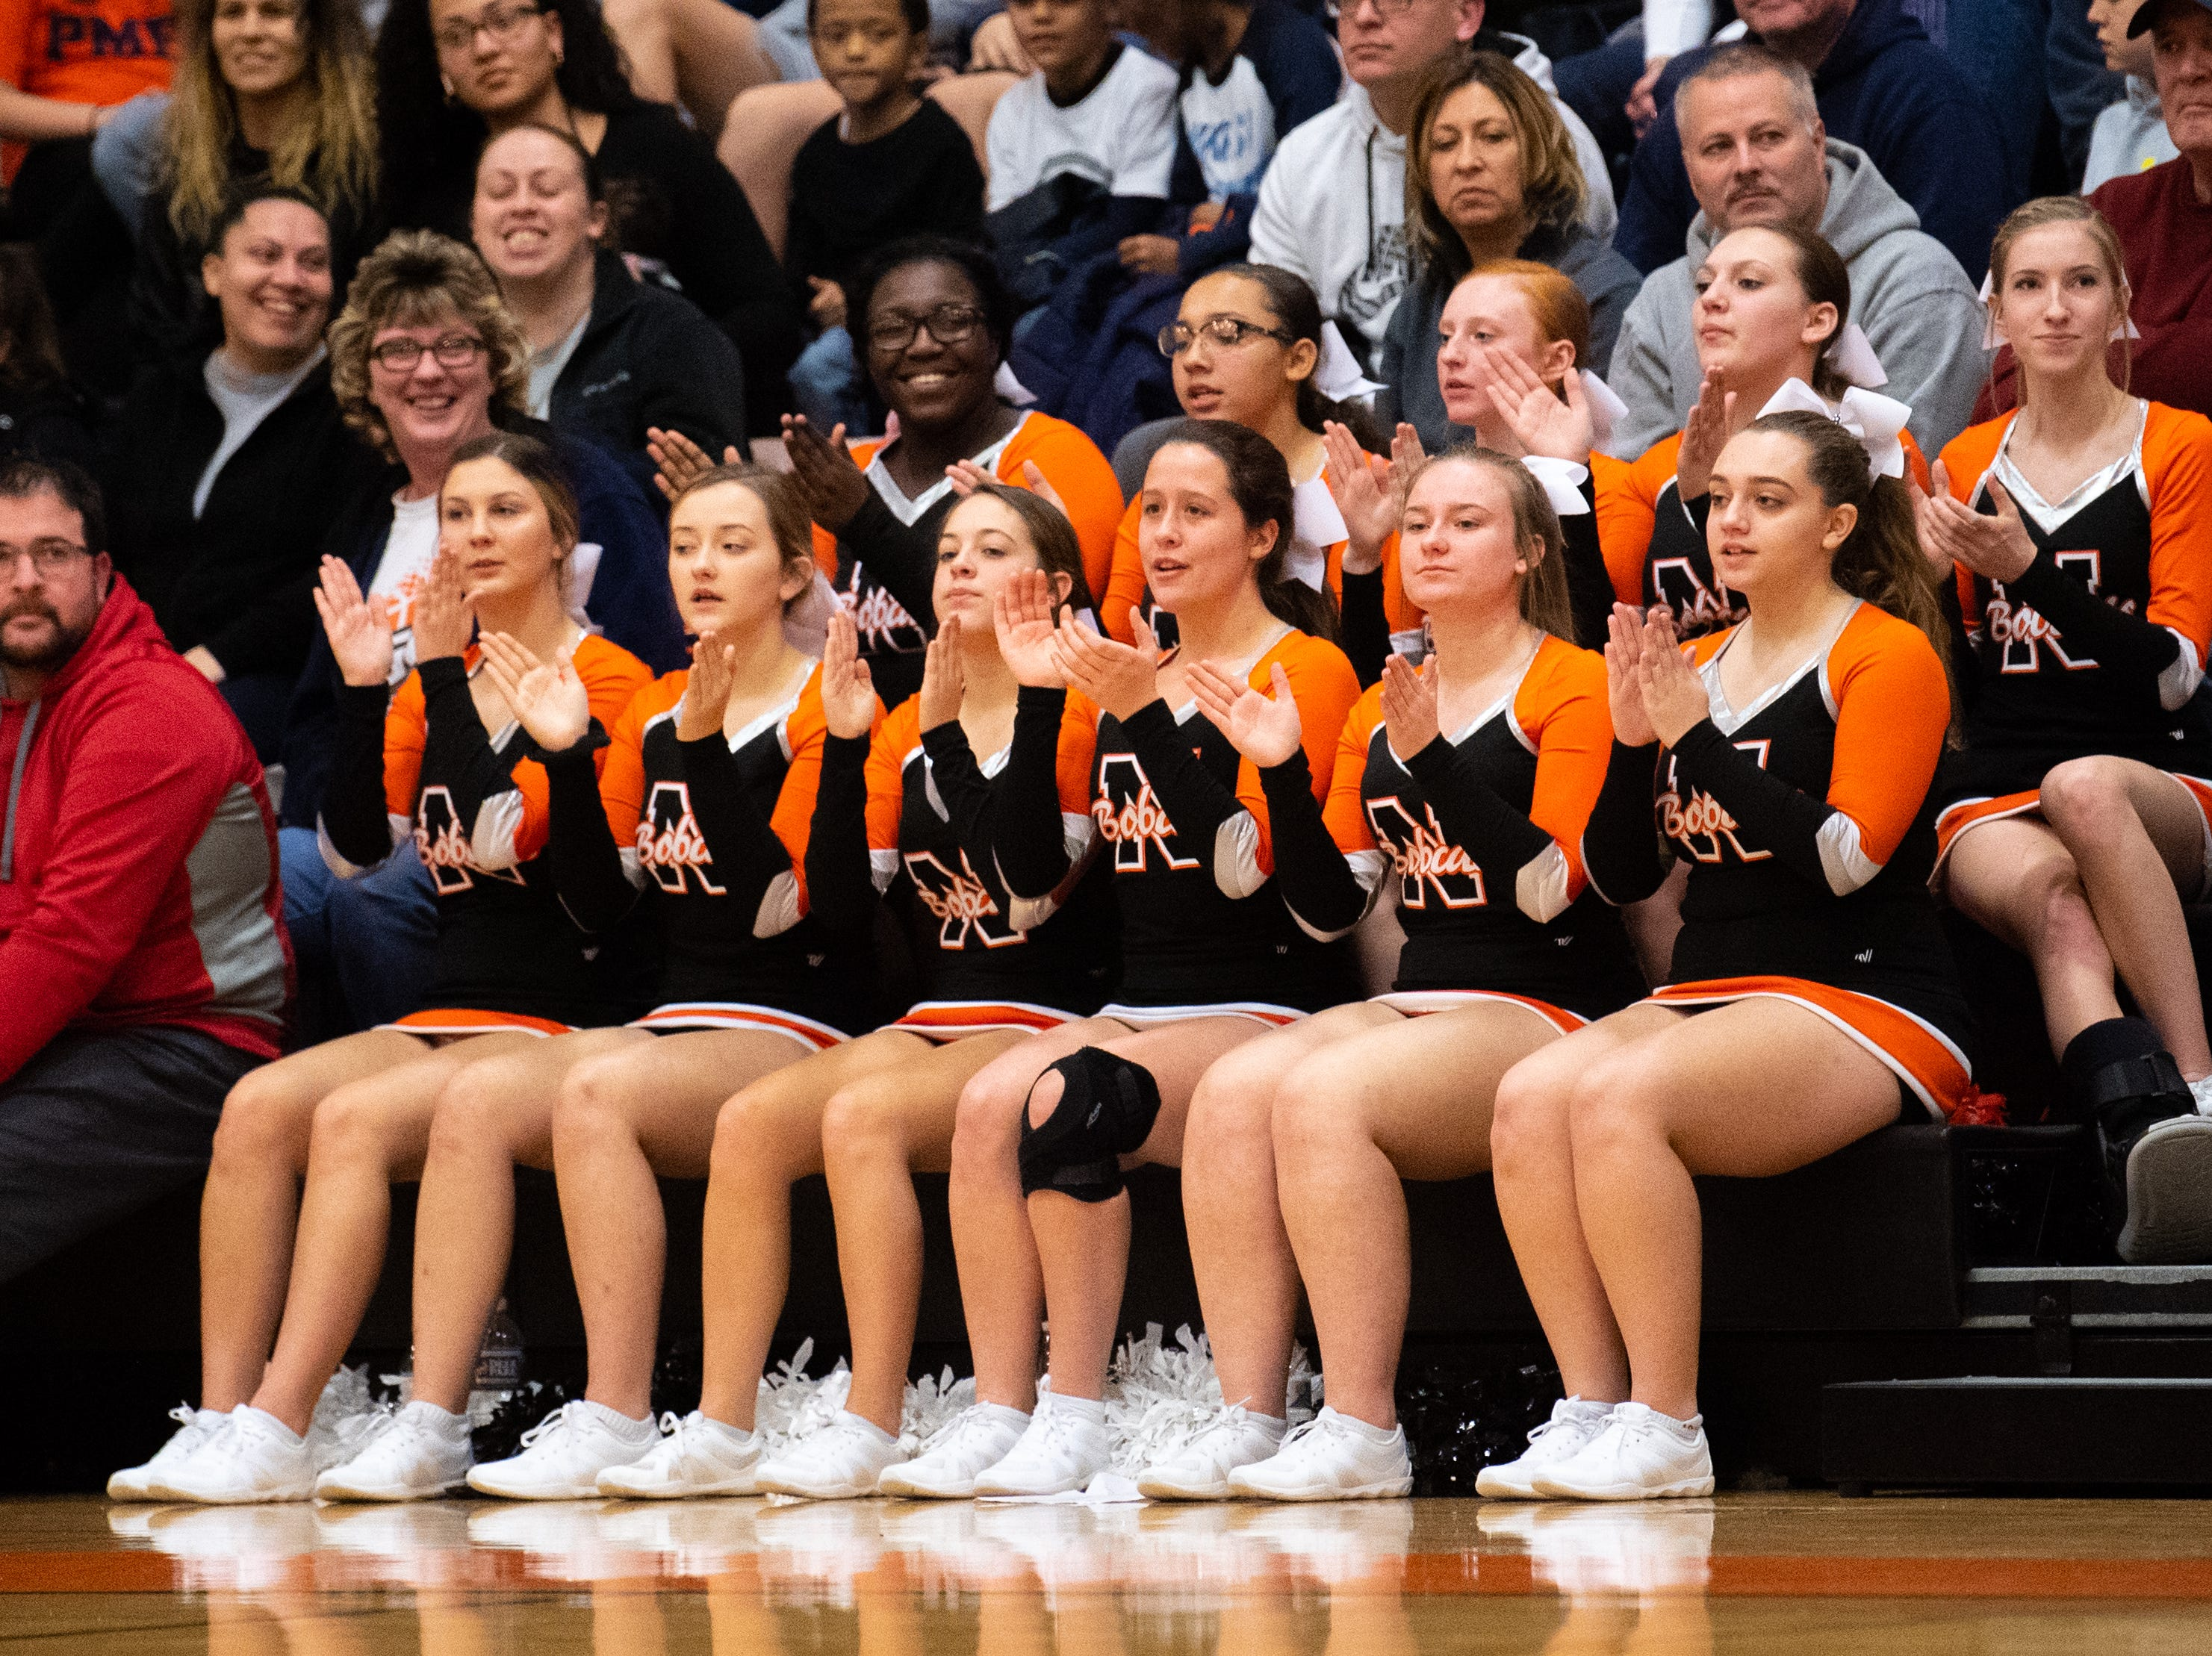 Northeastern's cheerleaders keep the crowd's energy up during the YAIAA Boys' basketball game between Columbia and Northeastern at Northeastern High School, Friday, December 7, 2018. The Bobcats defeated the Crimson Tide 65 to 51.